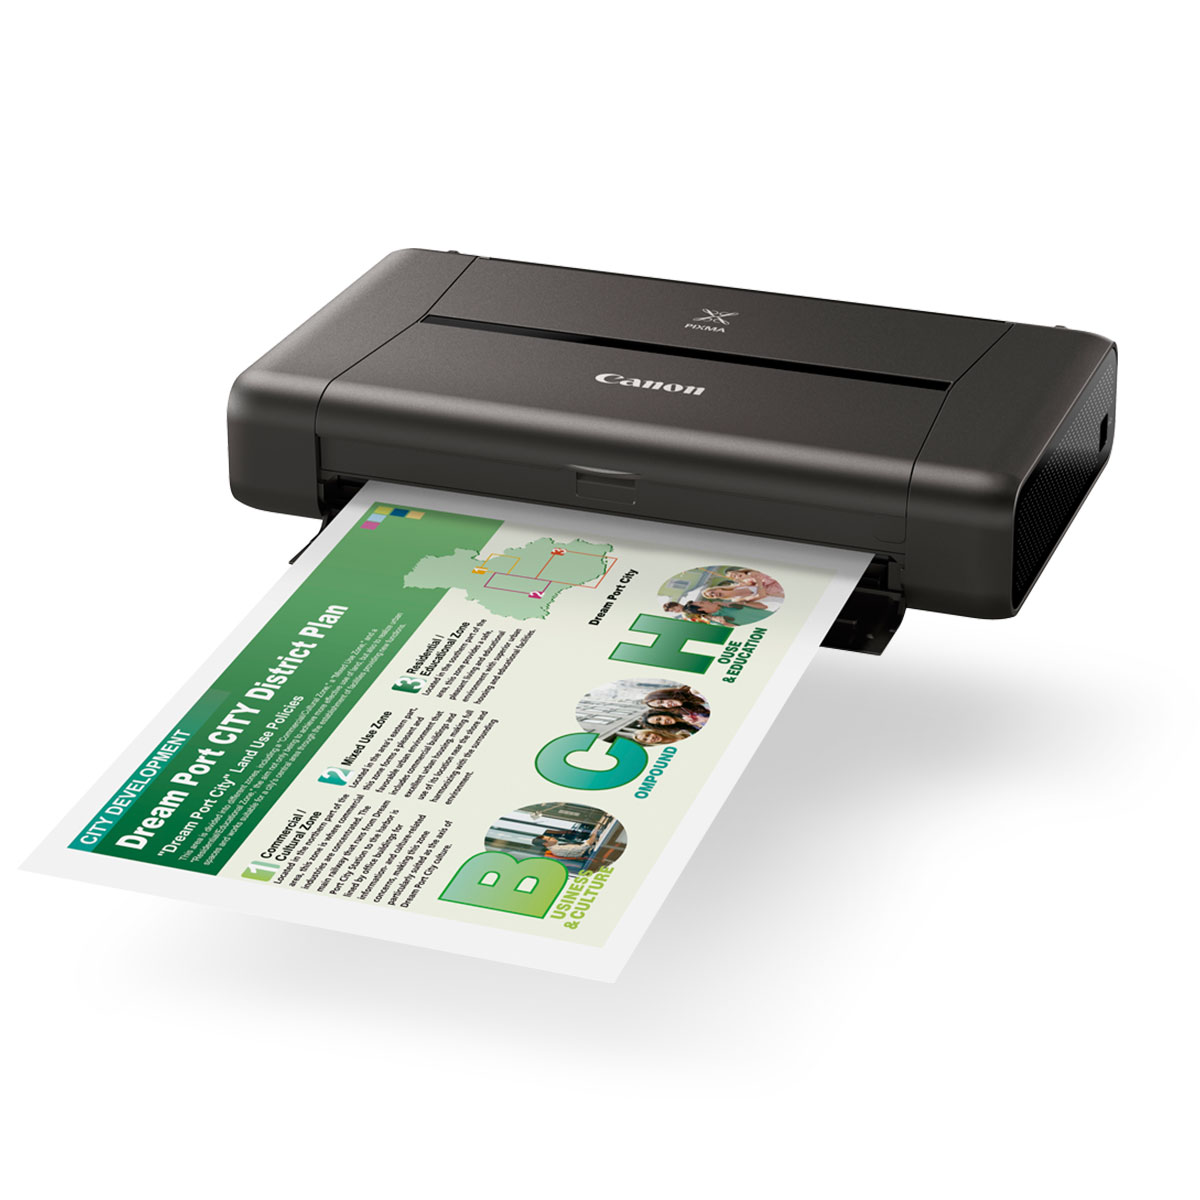 IP110 black angled with paper office advanced printer